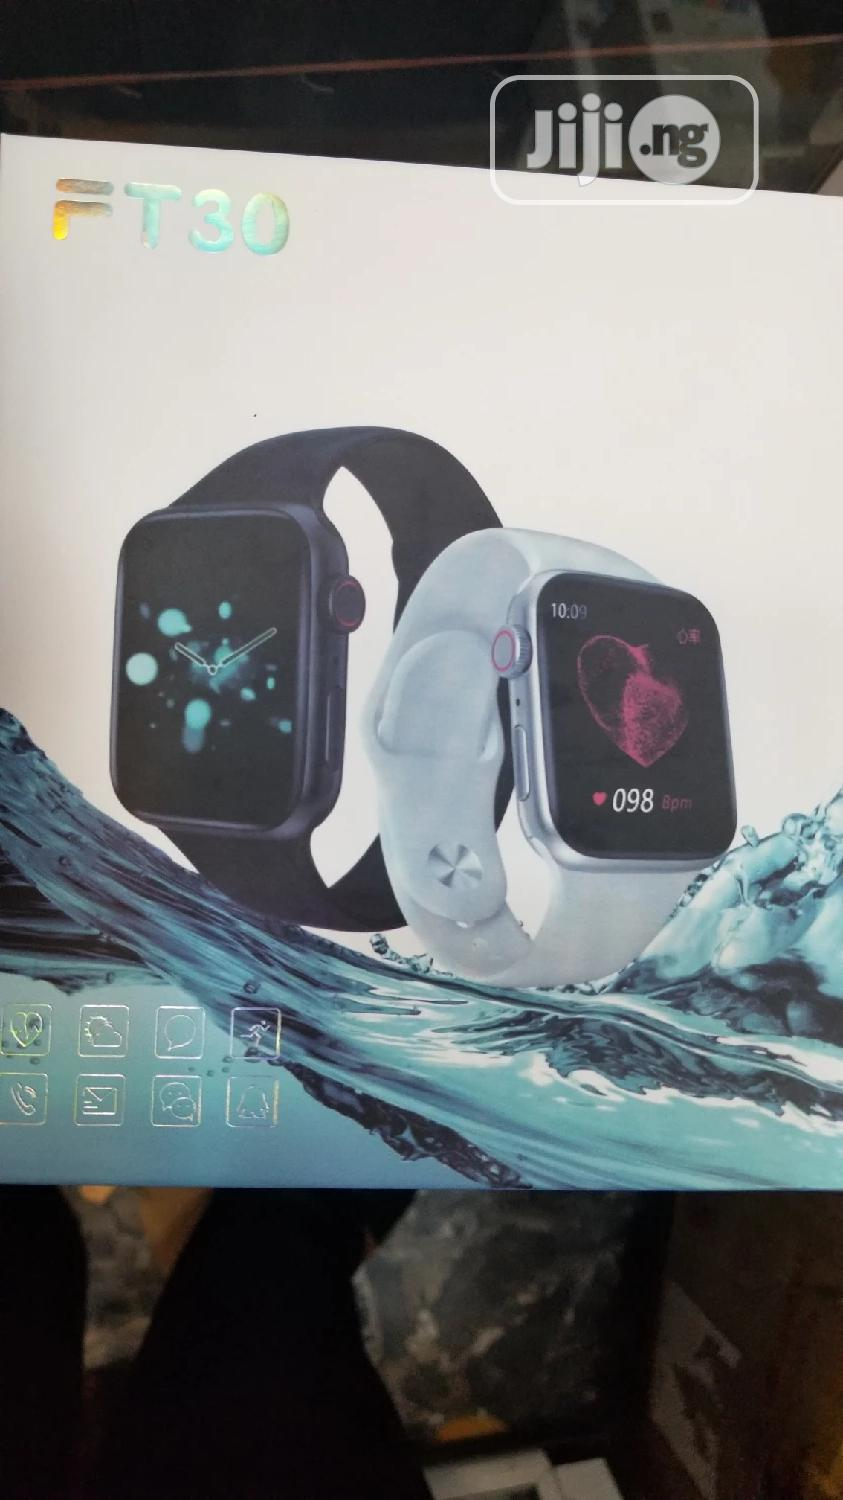 Archive: Ft30 Smartwatch Fitness Tracker